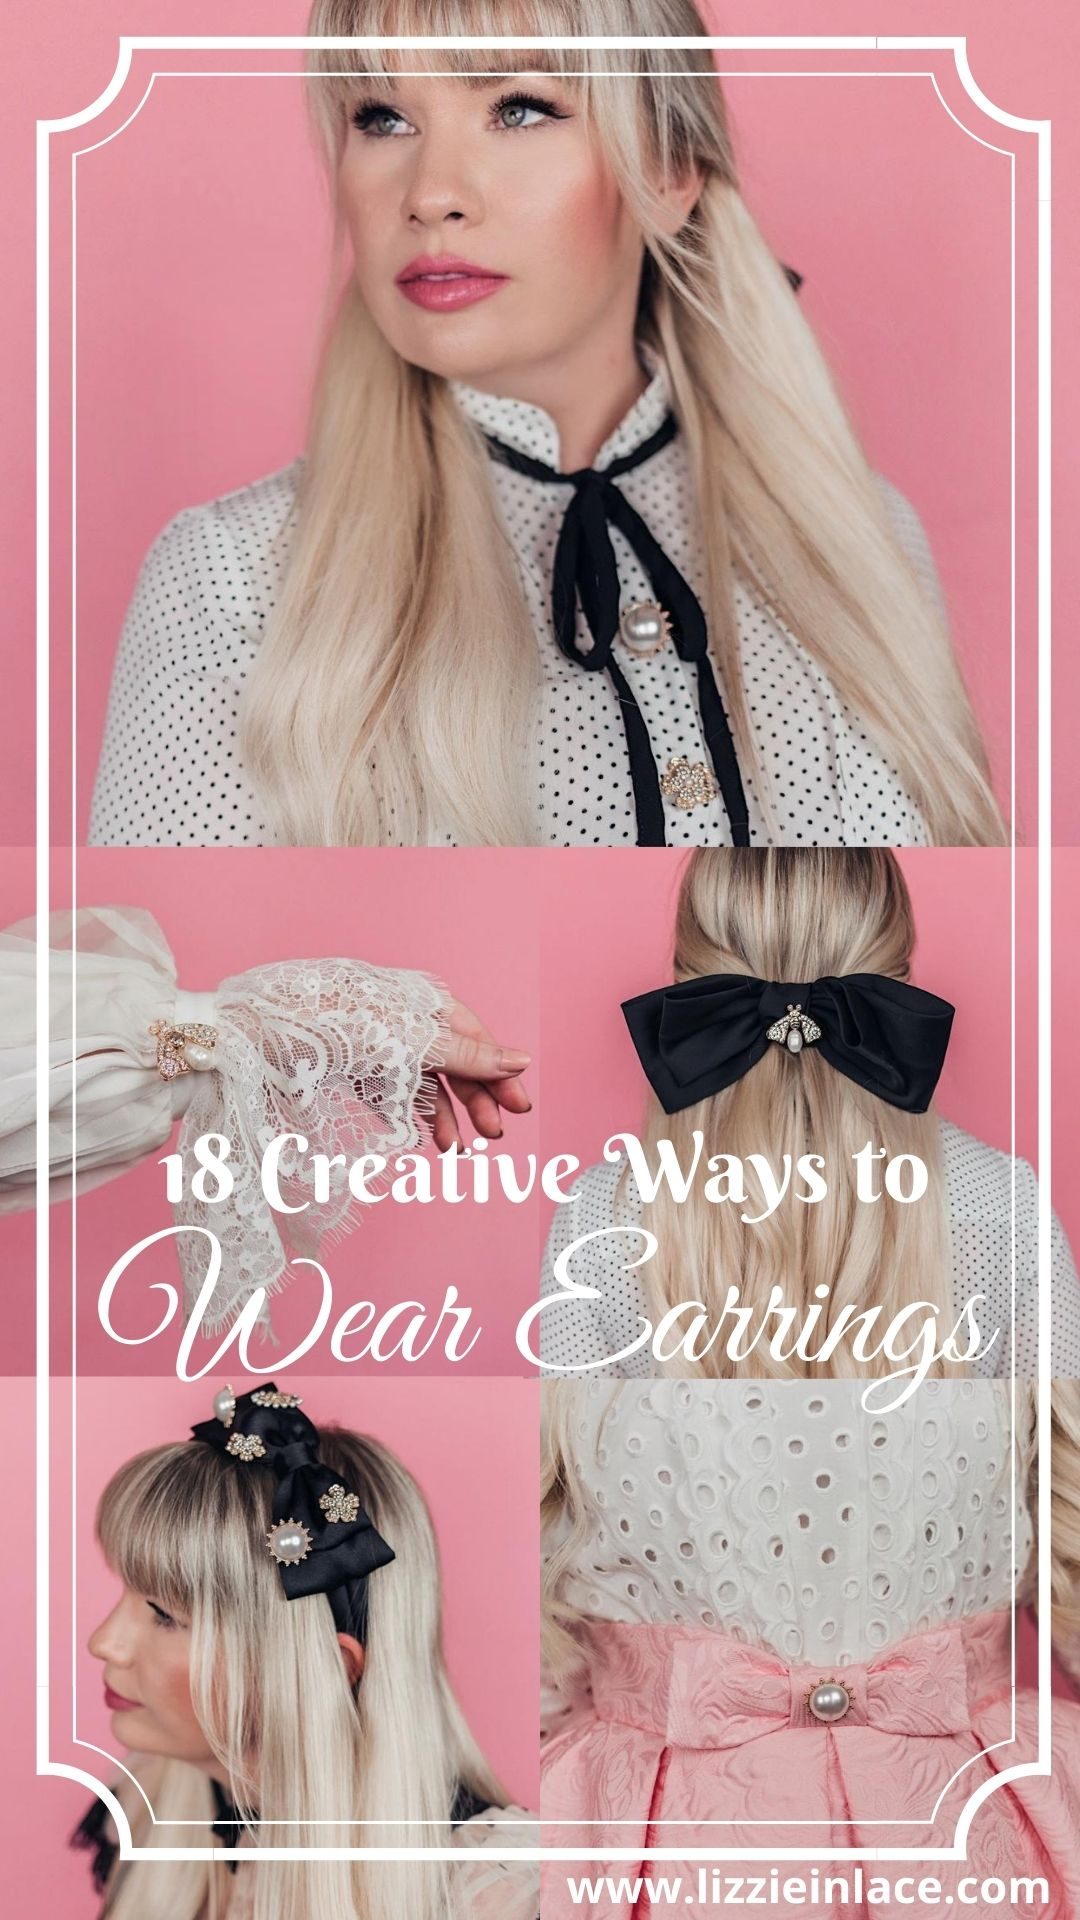 Fashion blogger Elizabeth Hugen of Lizzie in Lace shares creative ways to wear earrings without pierced ears